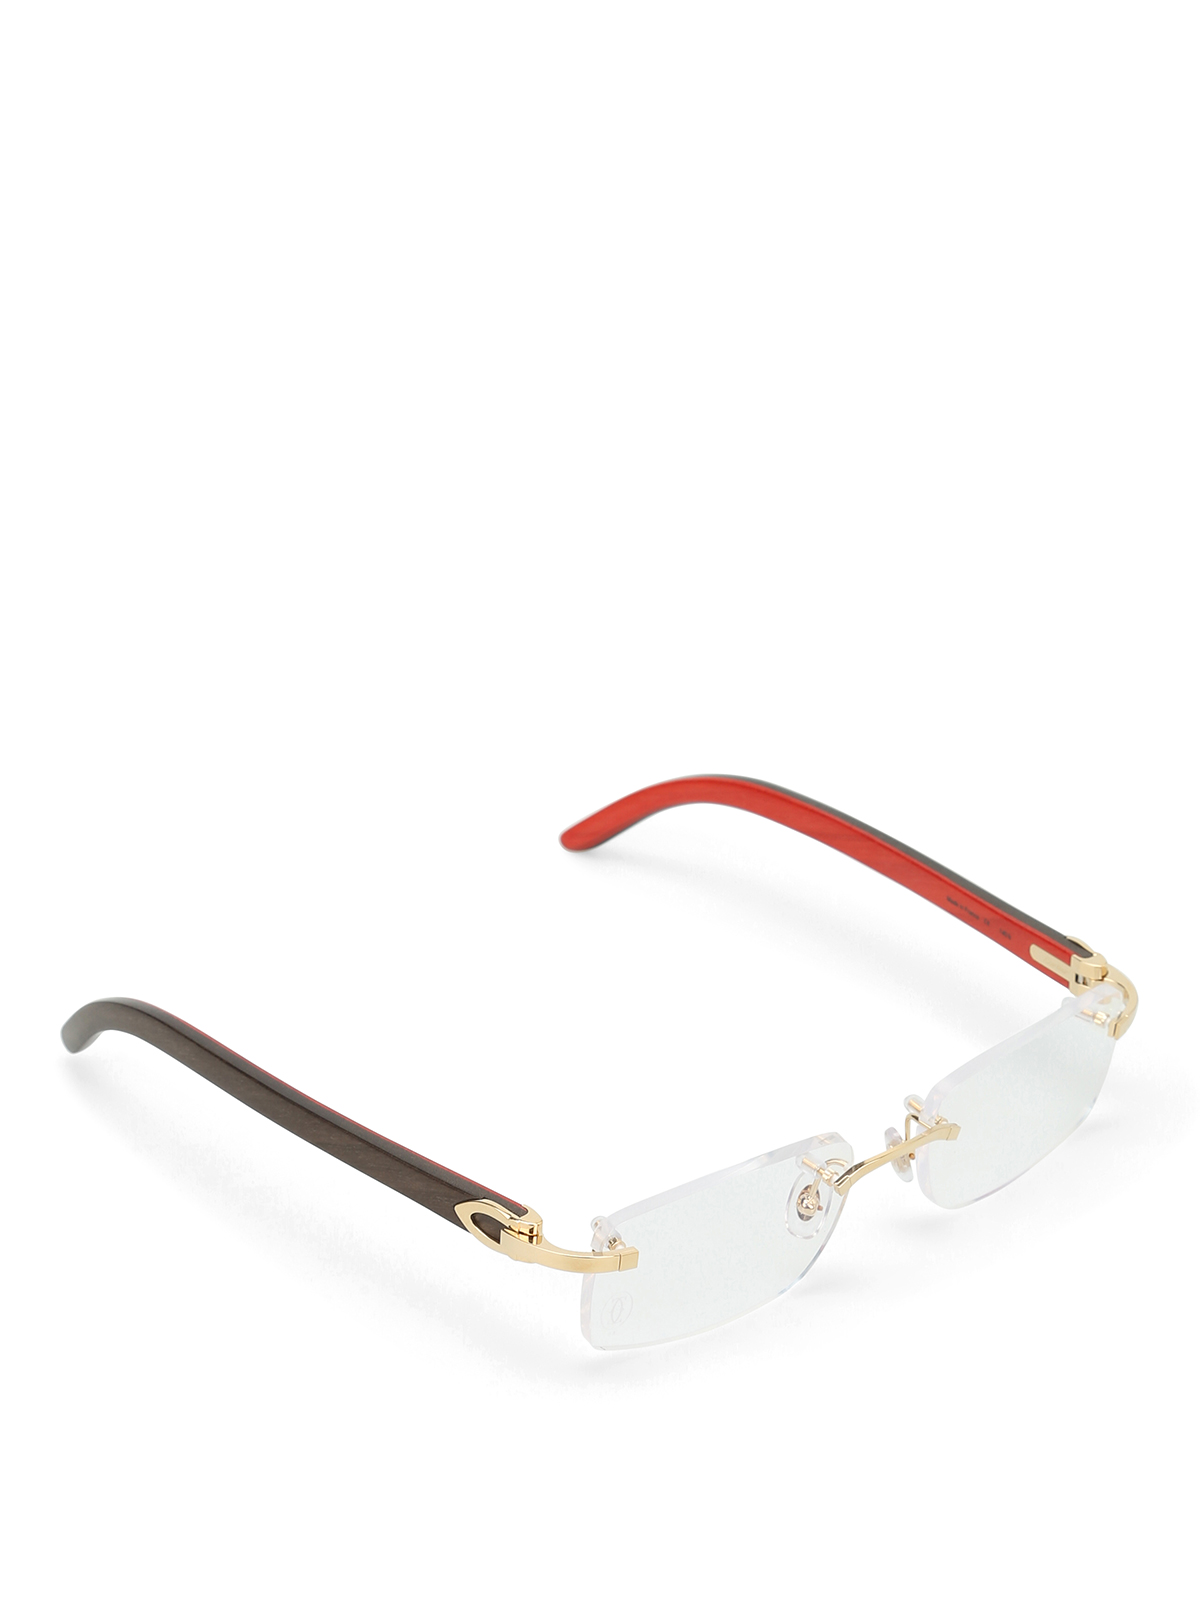 921bc8127eb Cartier Optical Glasses 2018 - Bitterroot Public Library